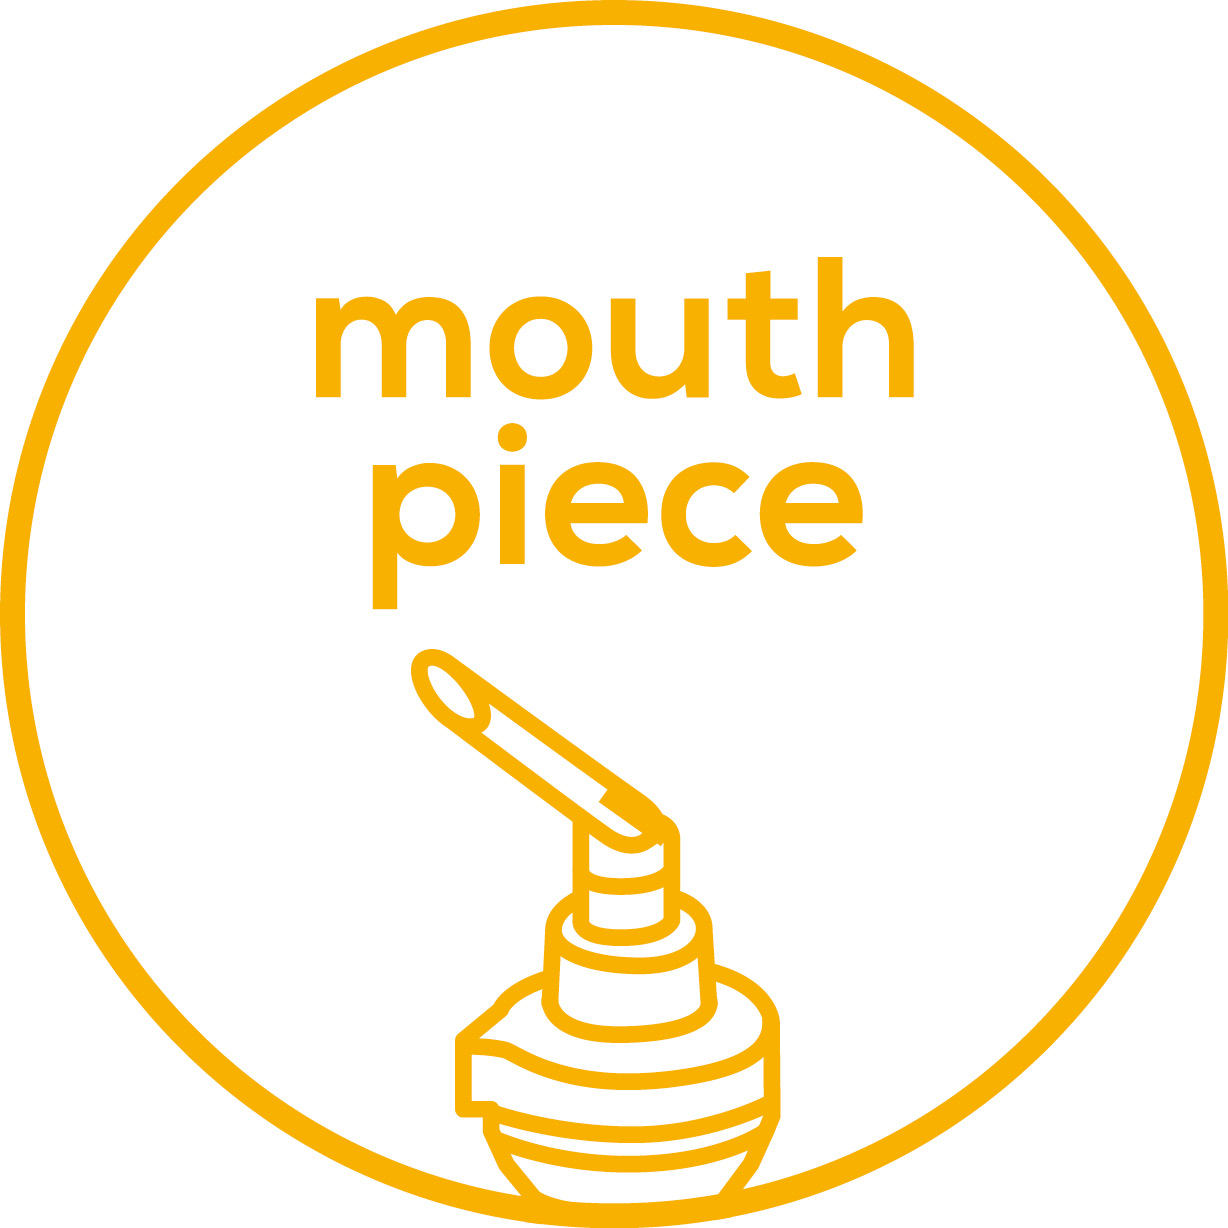 Mouthpiece A mouthpiece is included as an accessory